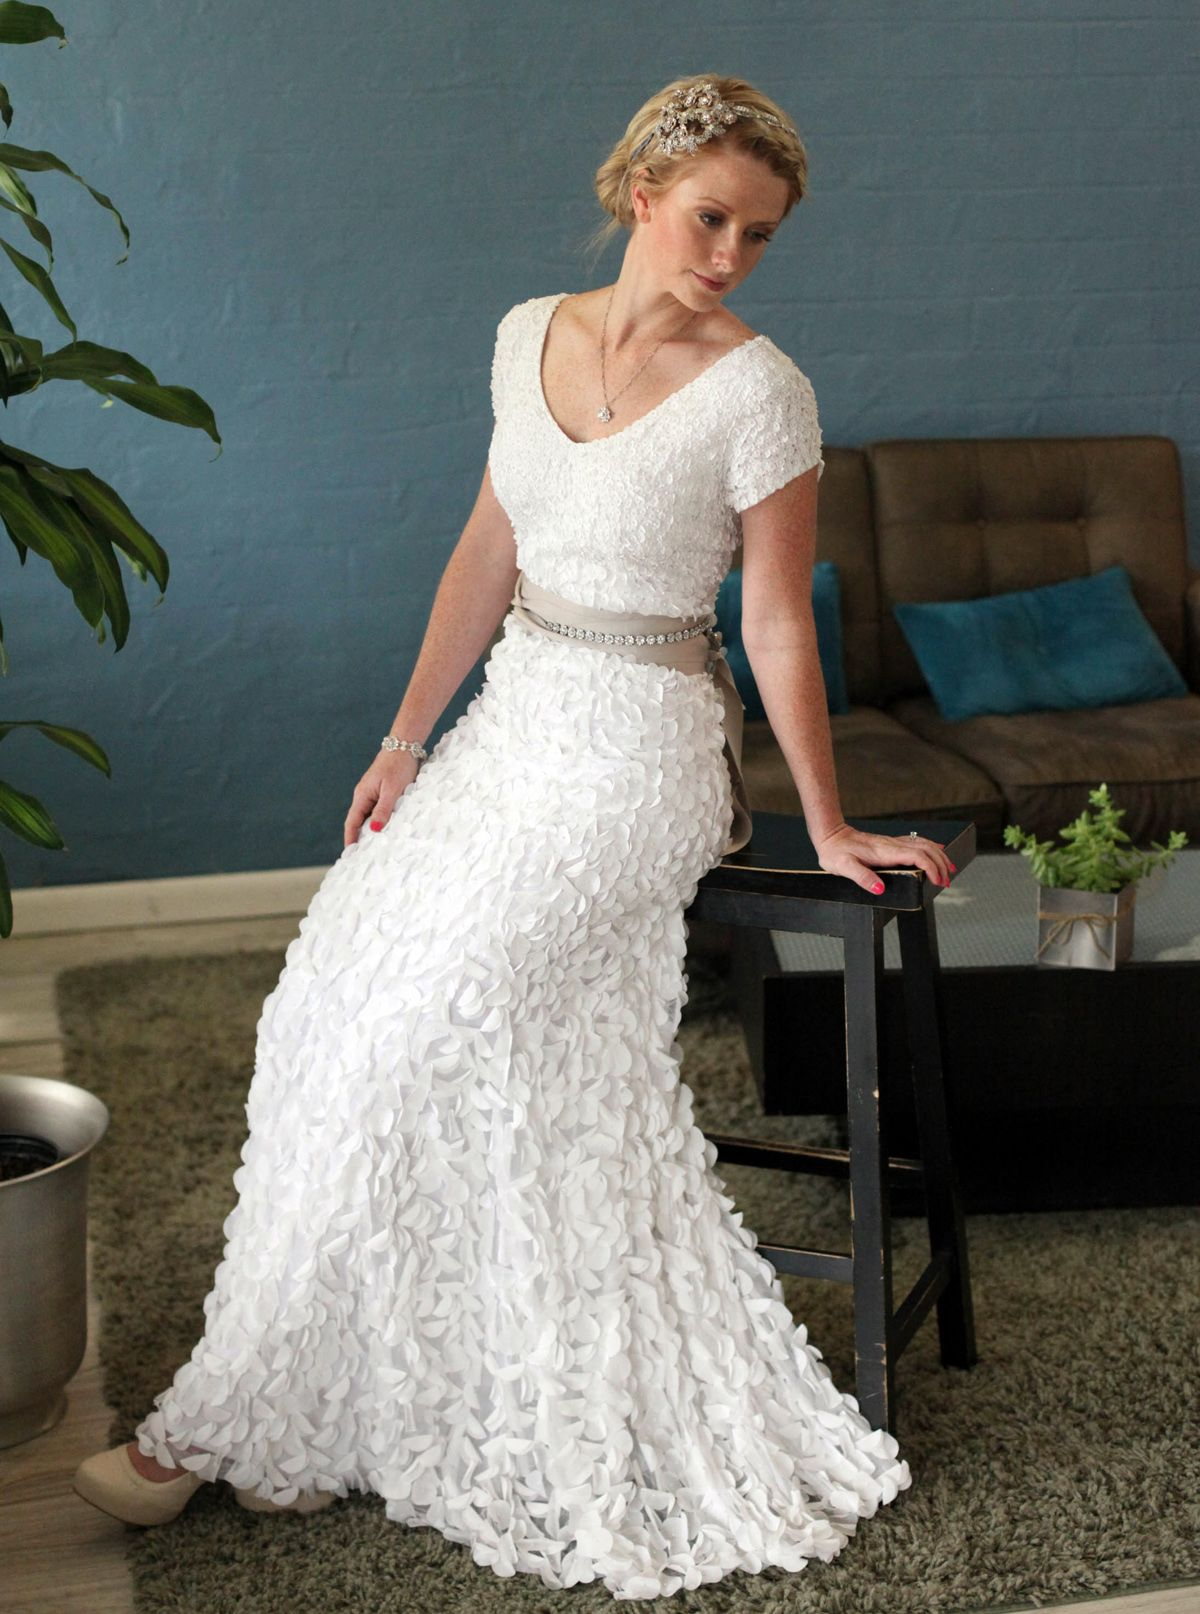 conservative wedding dress Stunning Texture Modest Wedding Gown Not so big on the hair but lovee